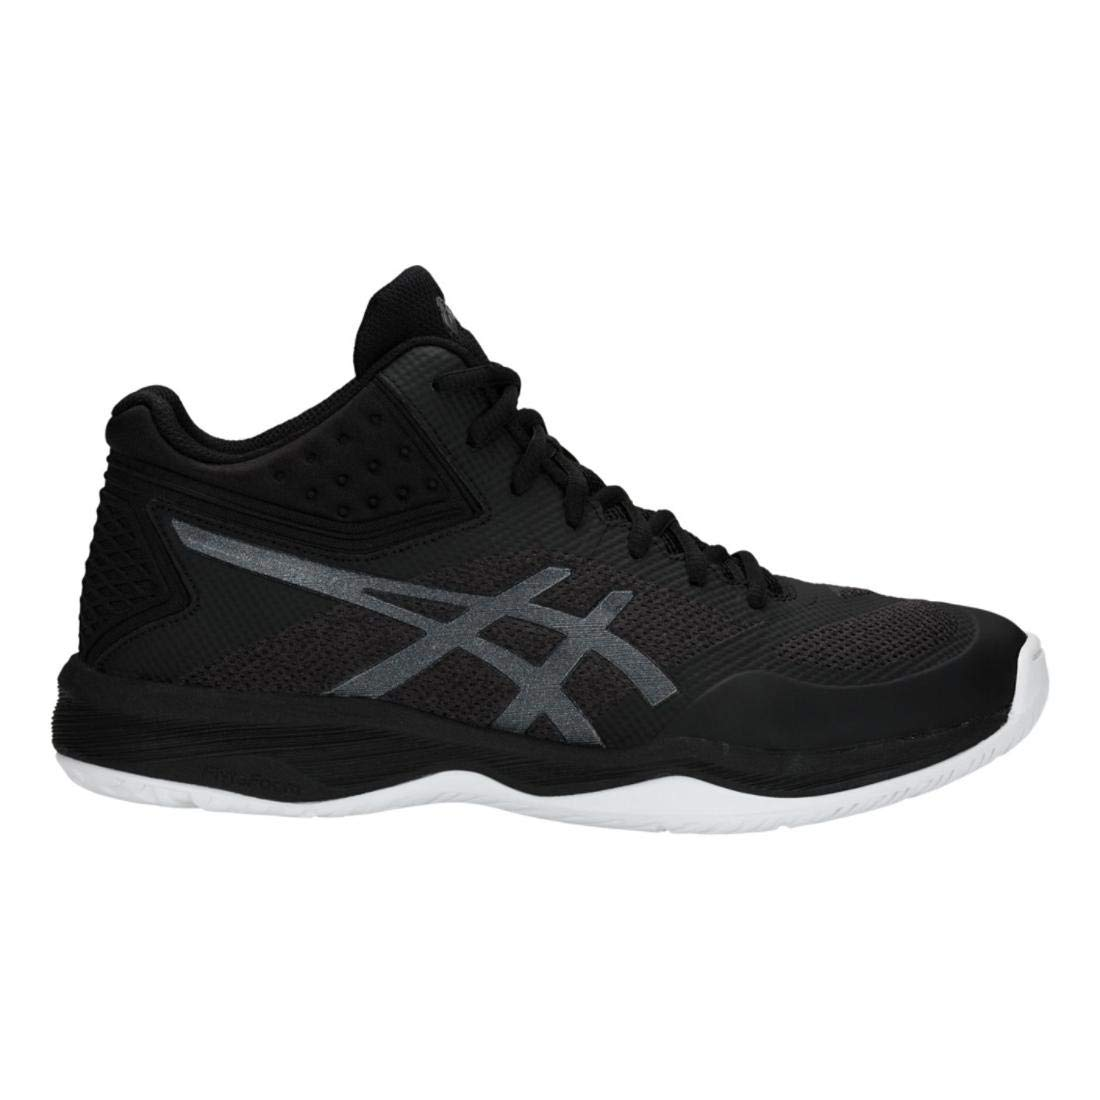 0484556962a7ee ASICS Men s Netburner Ballistic FF MT Volleyball Shoes product image